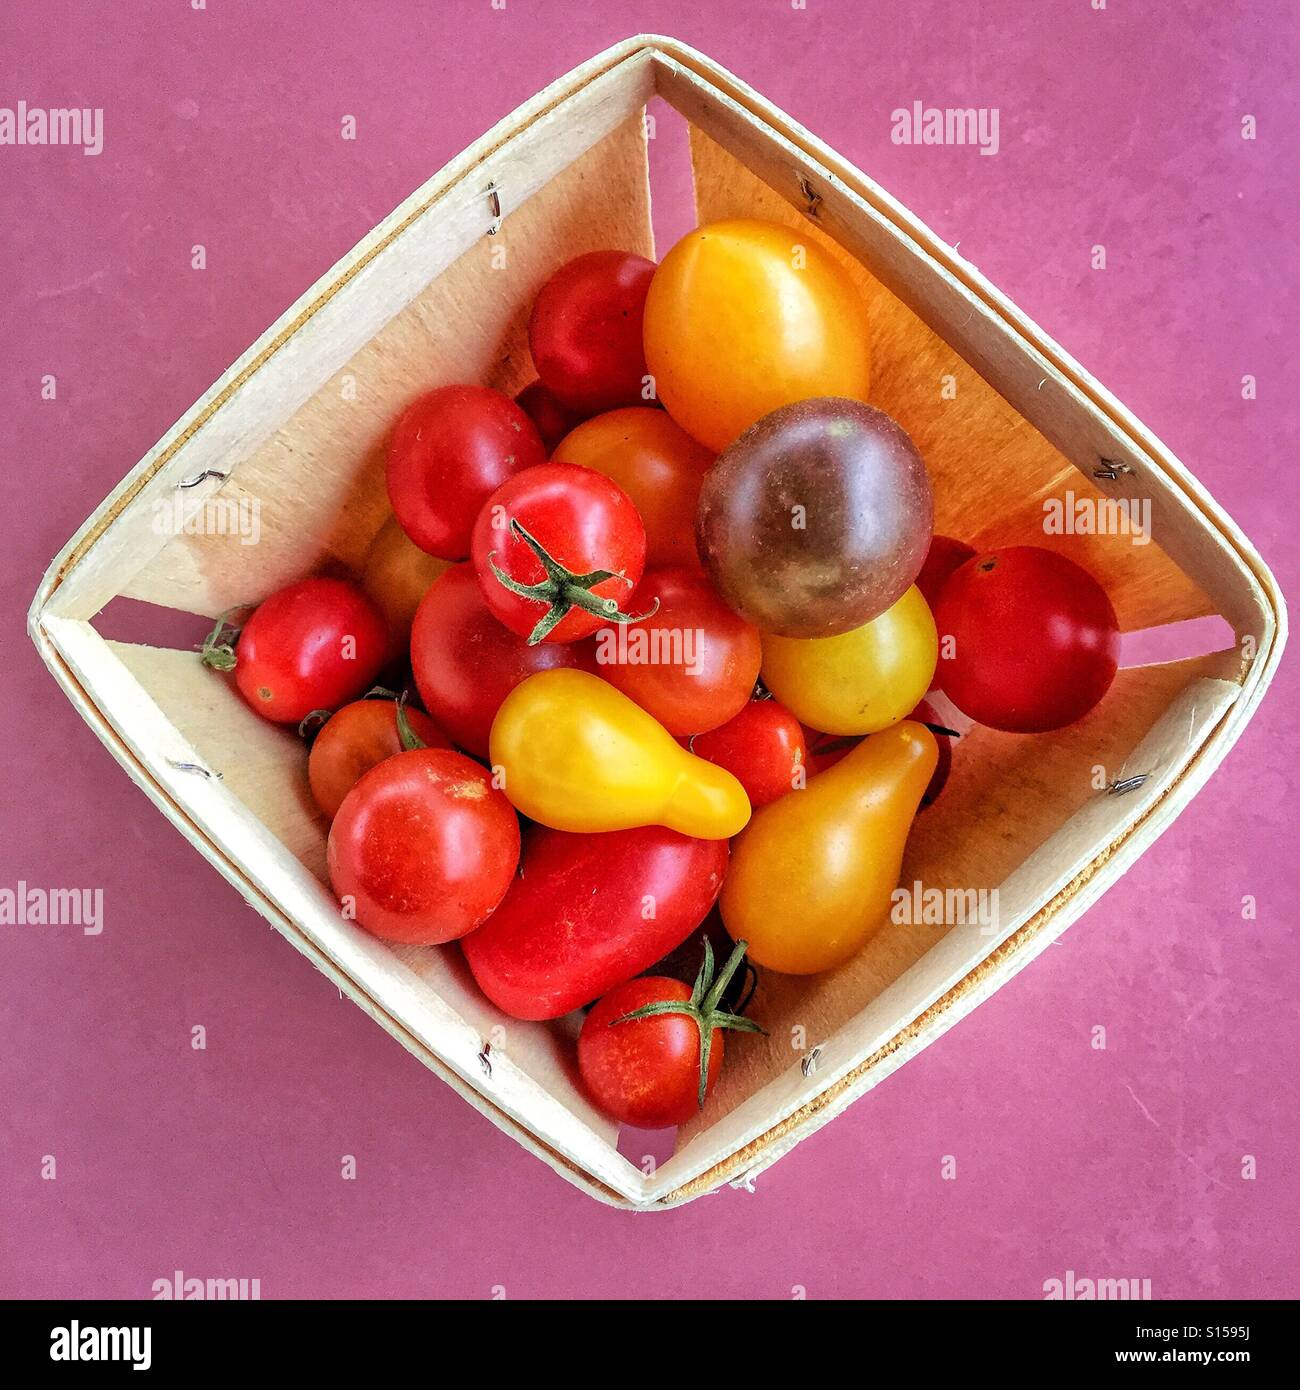 A box is filled with a variety of garden fresh heirloom cherry tomatoes. - Stock Image